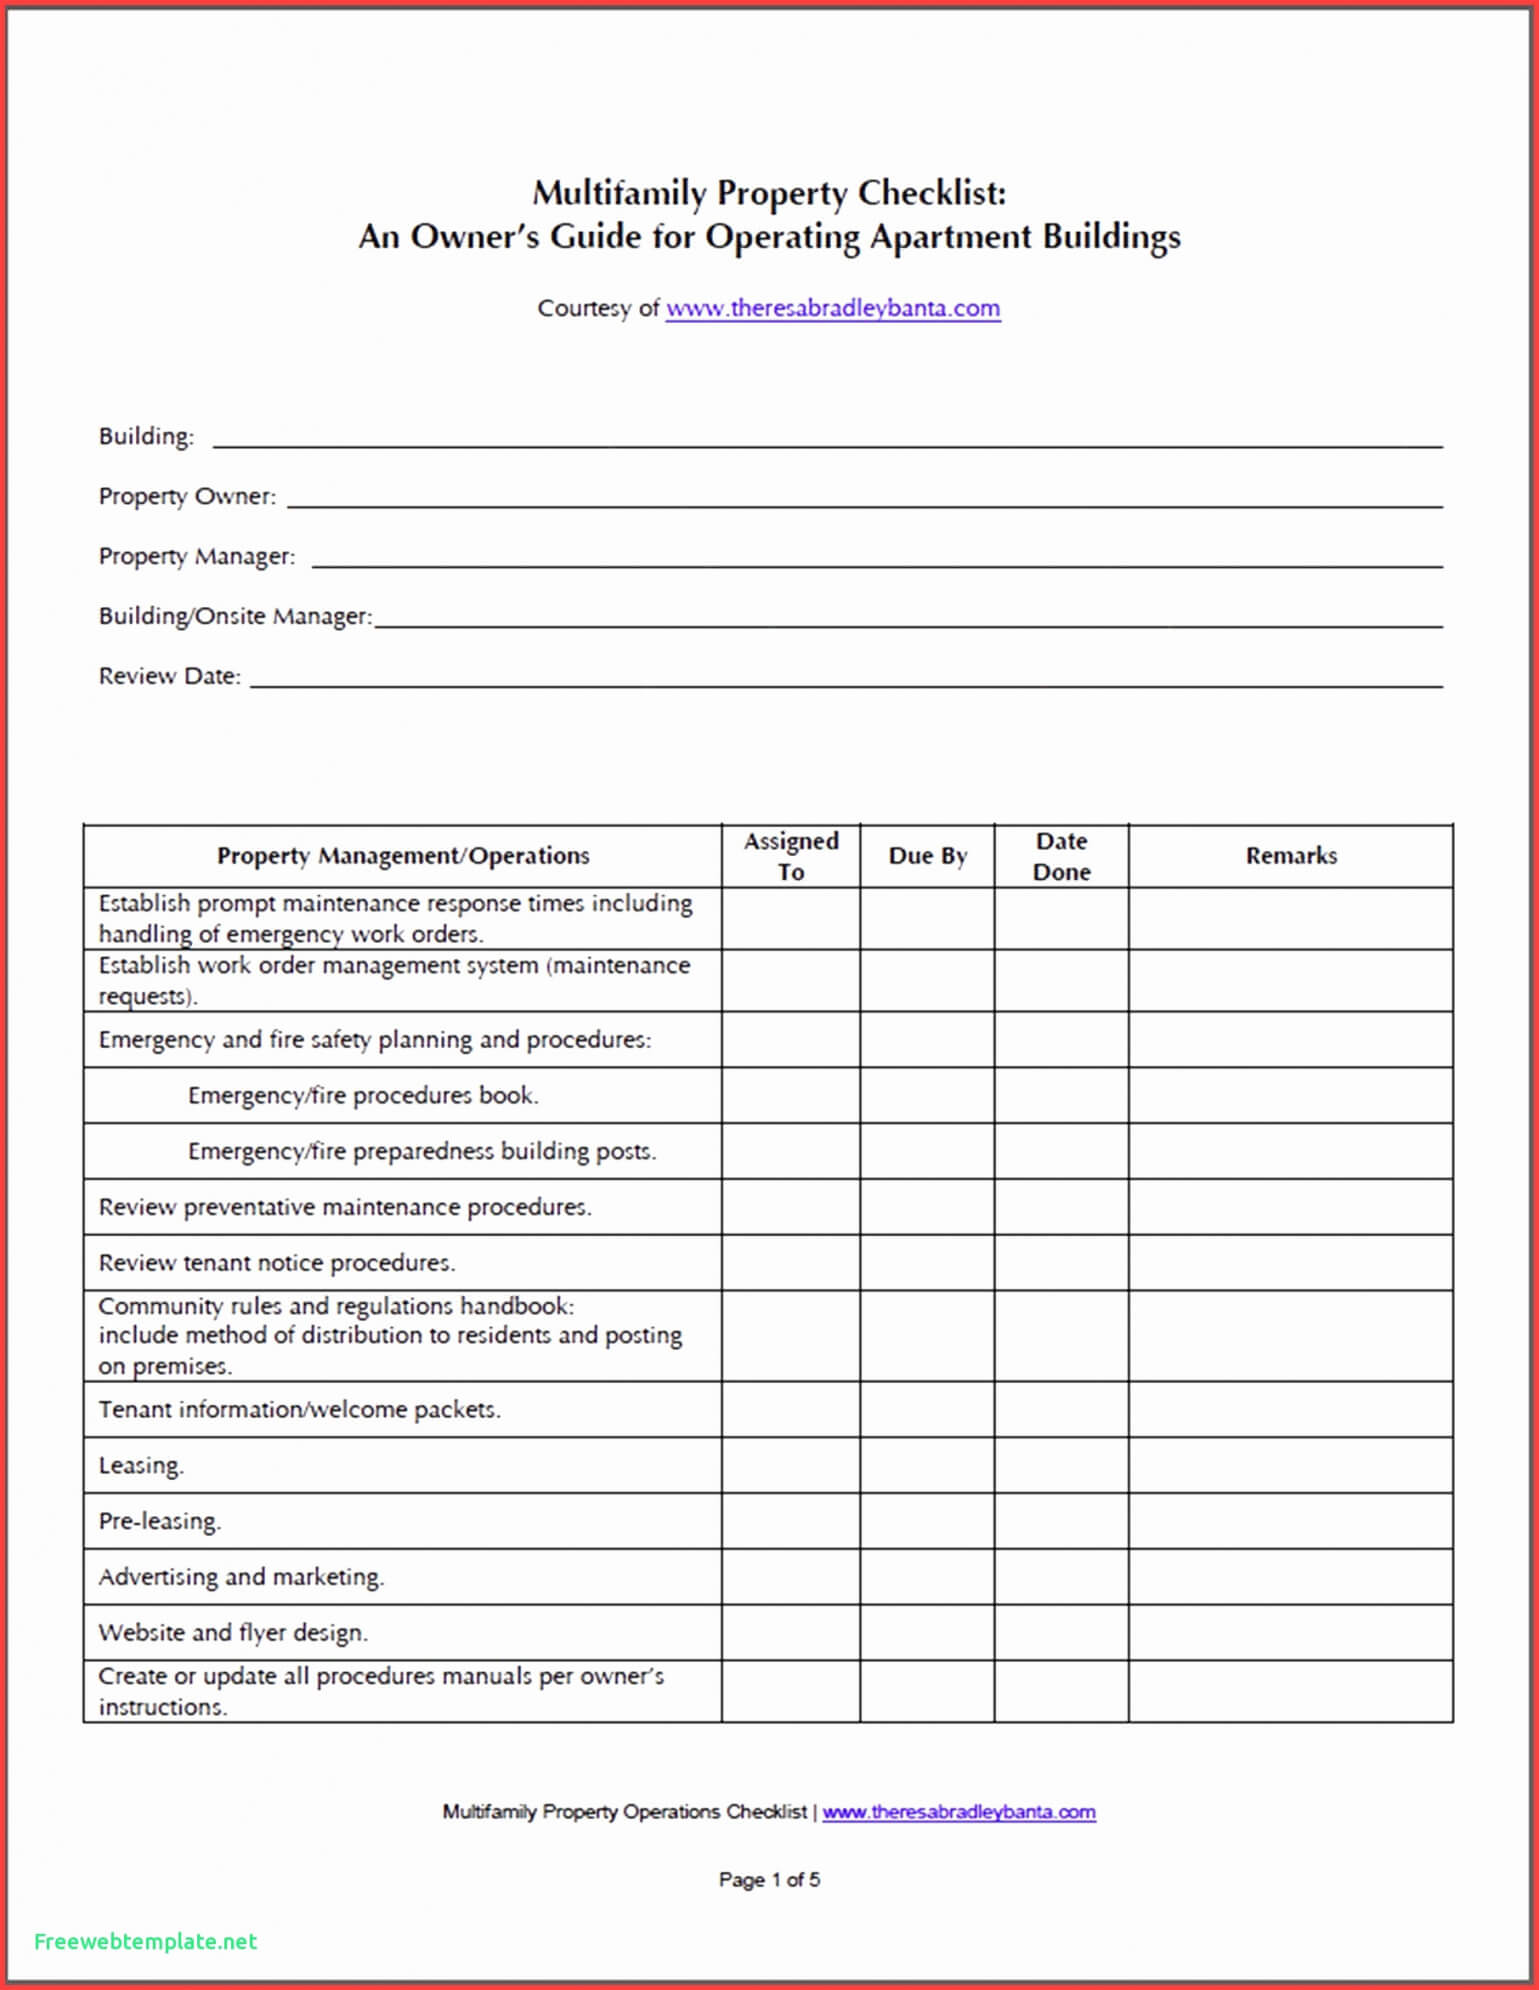 Engineering Inspection Report Template - Atlantaauctionco throughout Engineering Inspection Report Template